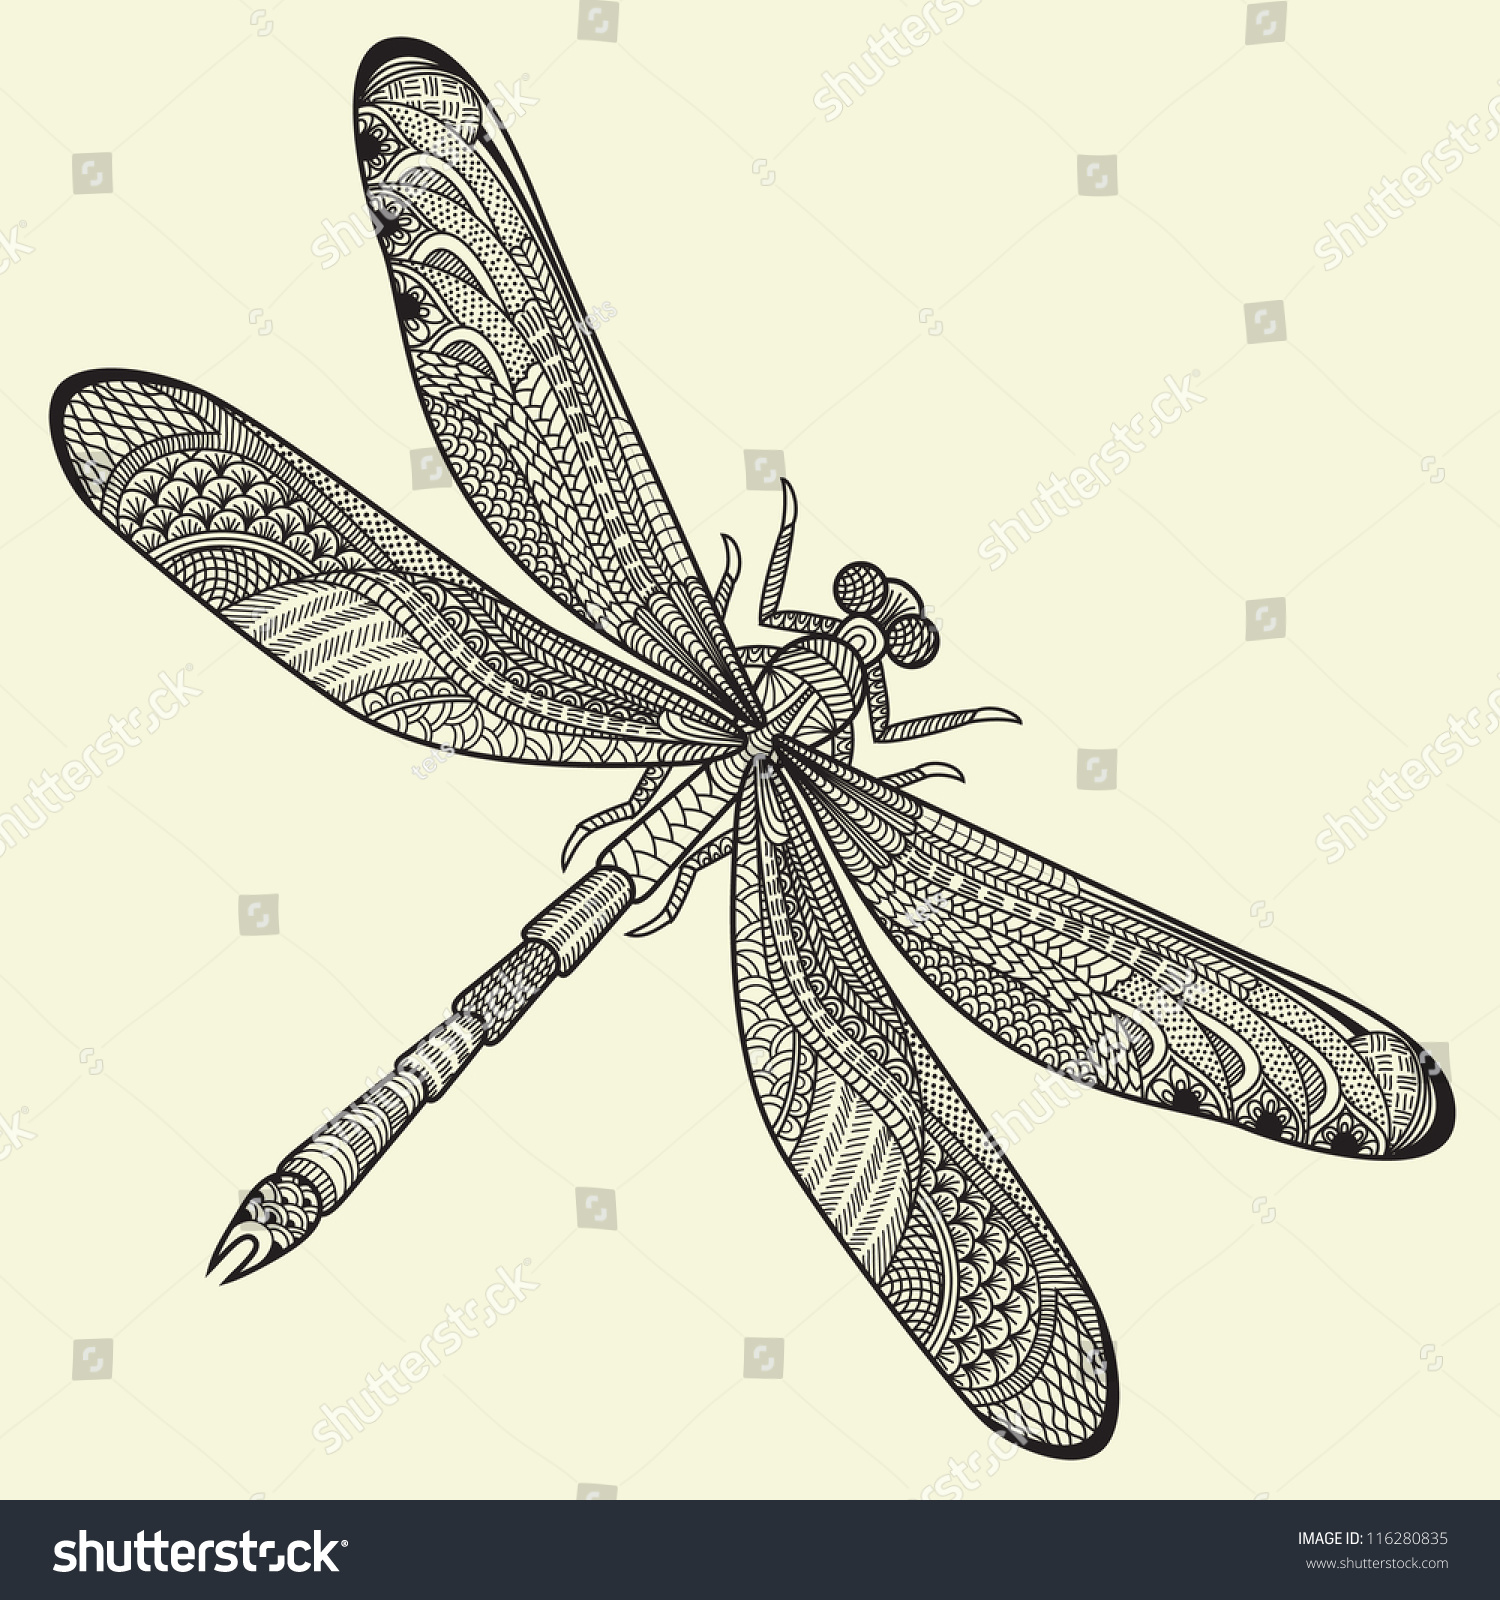 Dragonfly abstract photo